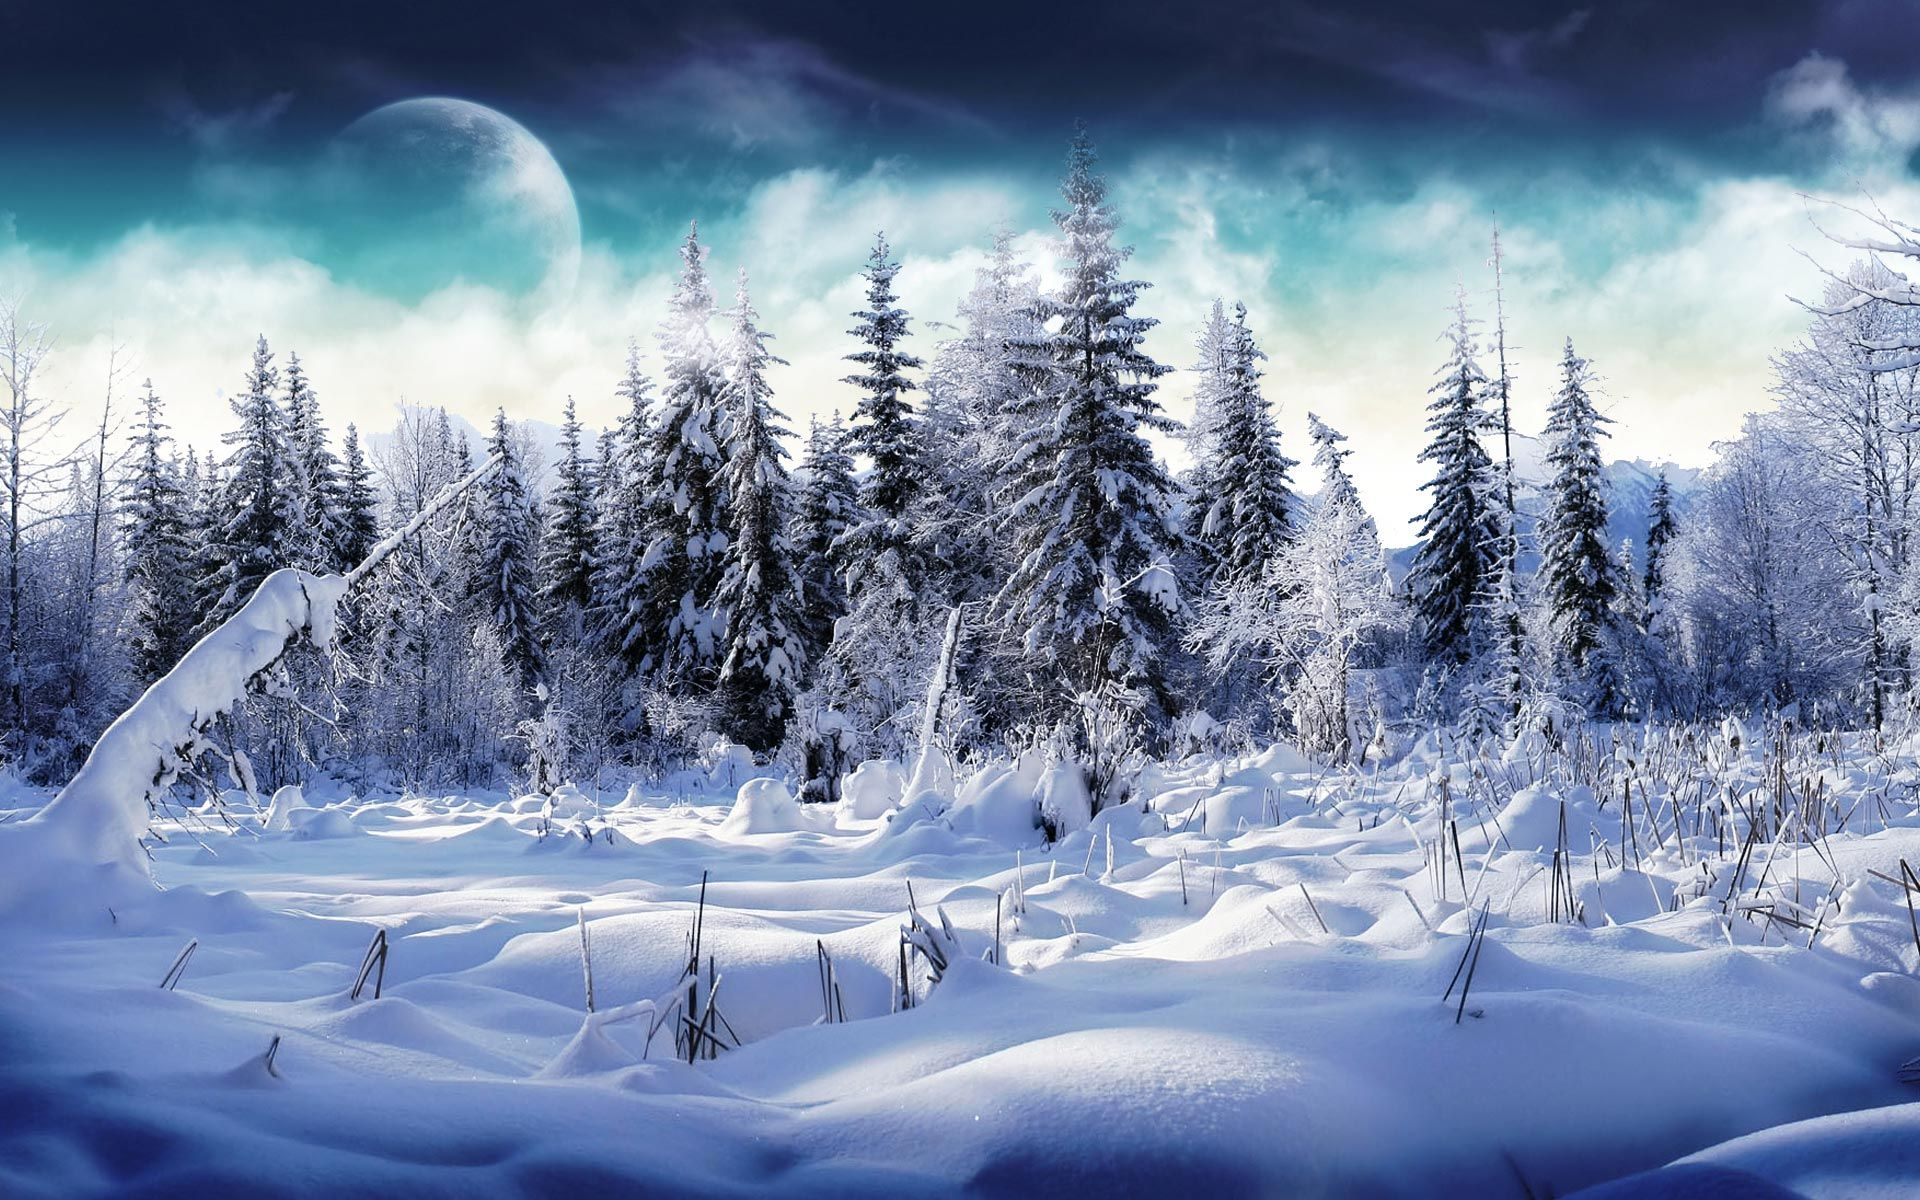 Desktop Wallpaper · Gallery · Nature · Winter Snowy forest | Free Background 1920x1200